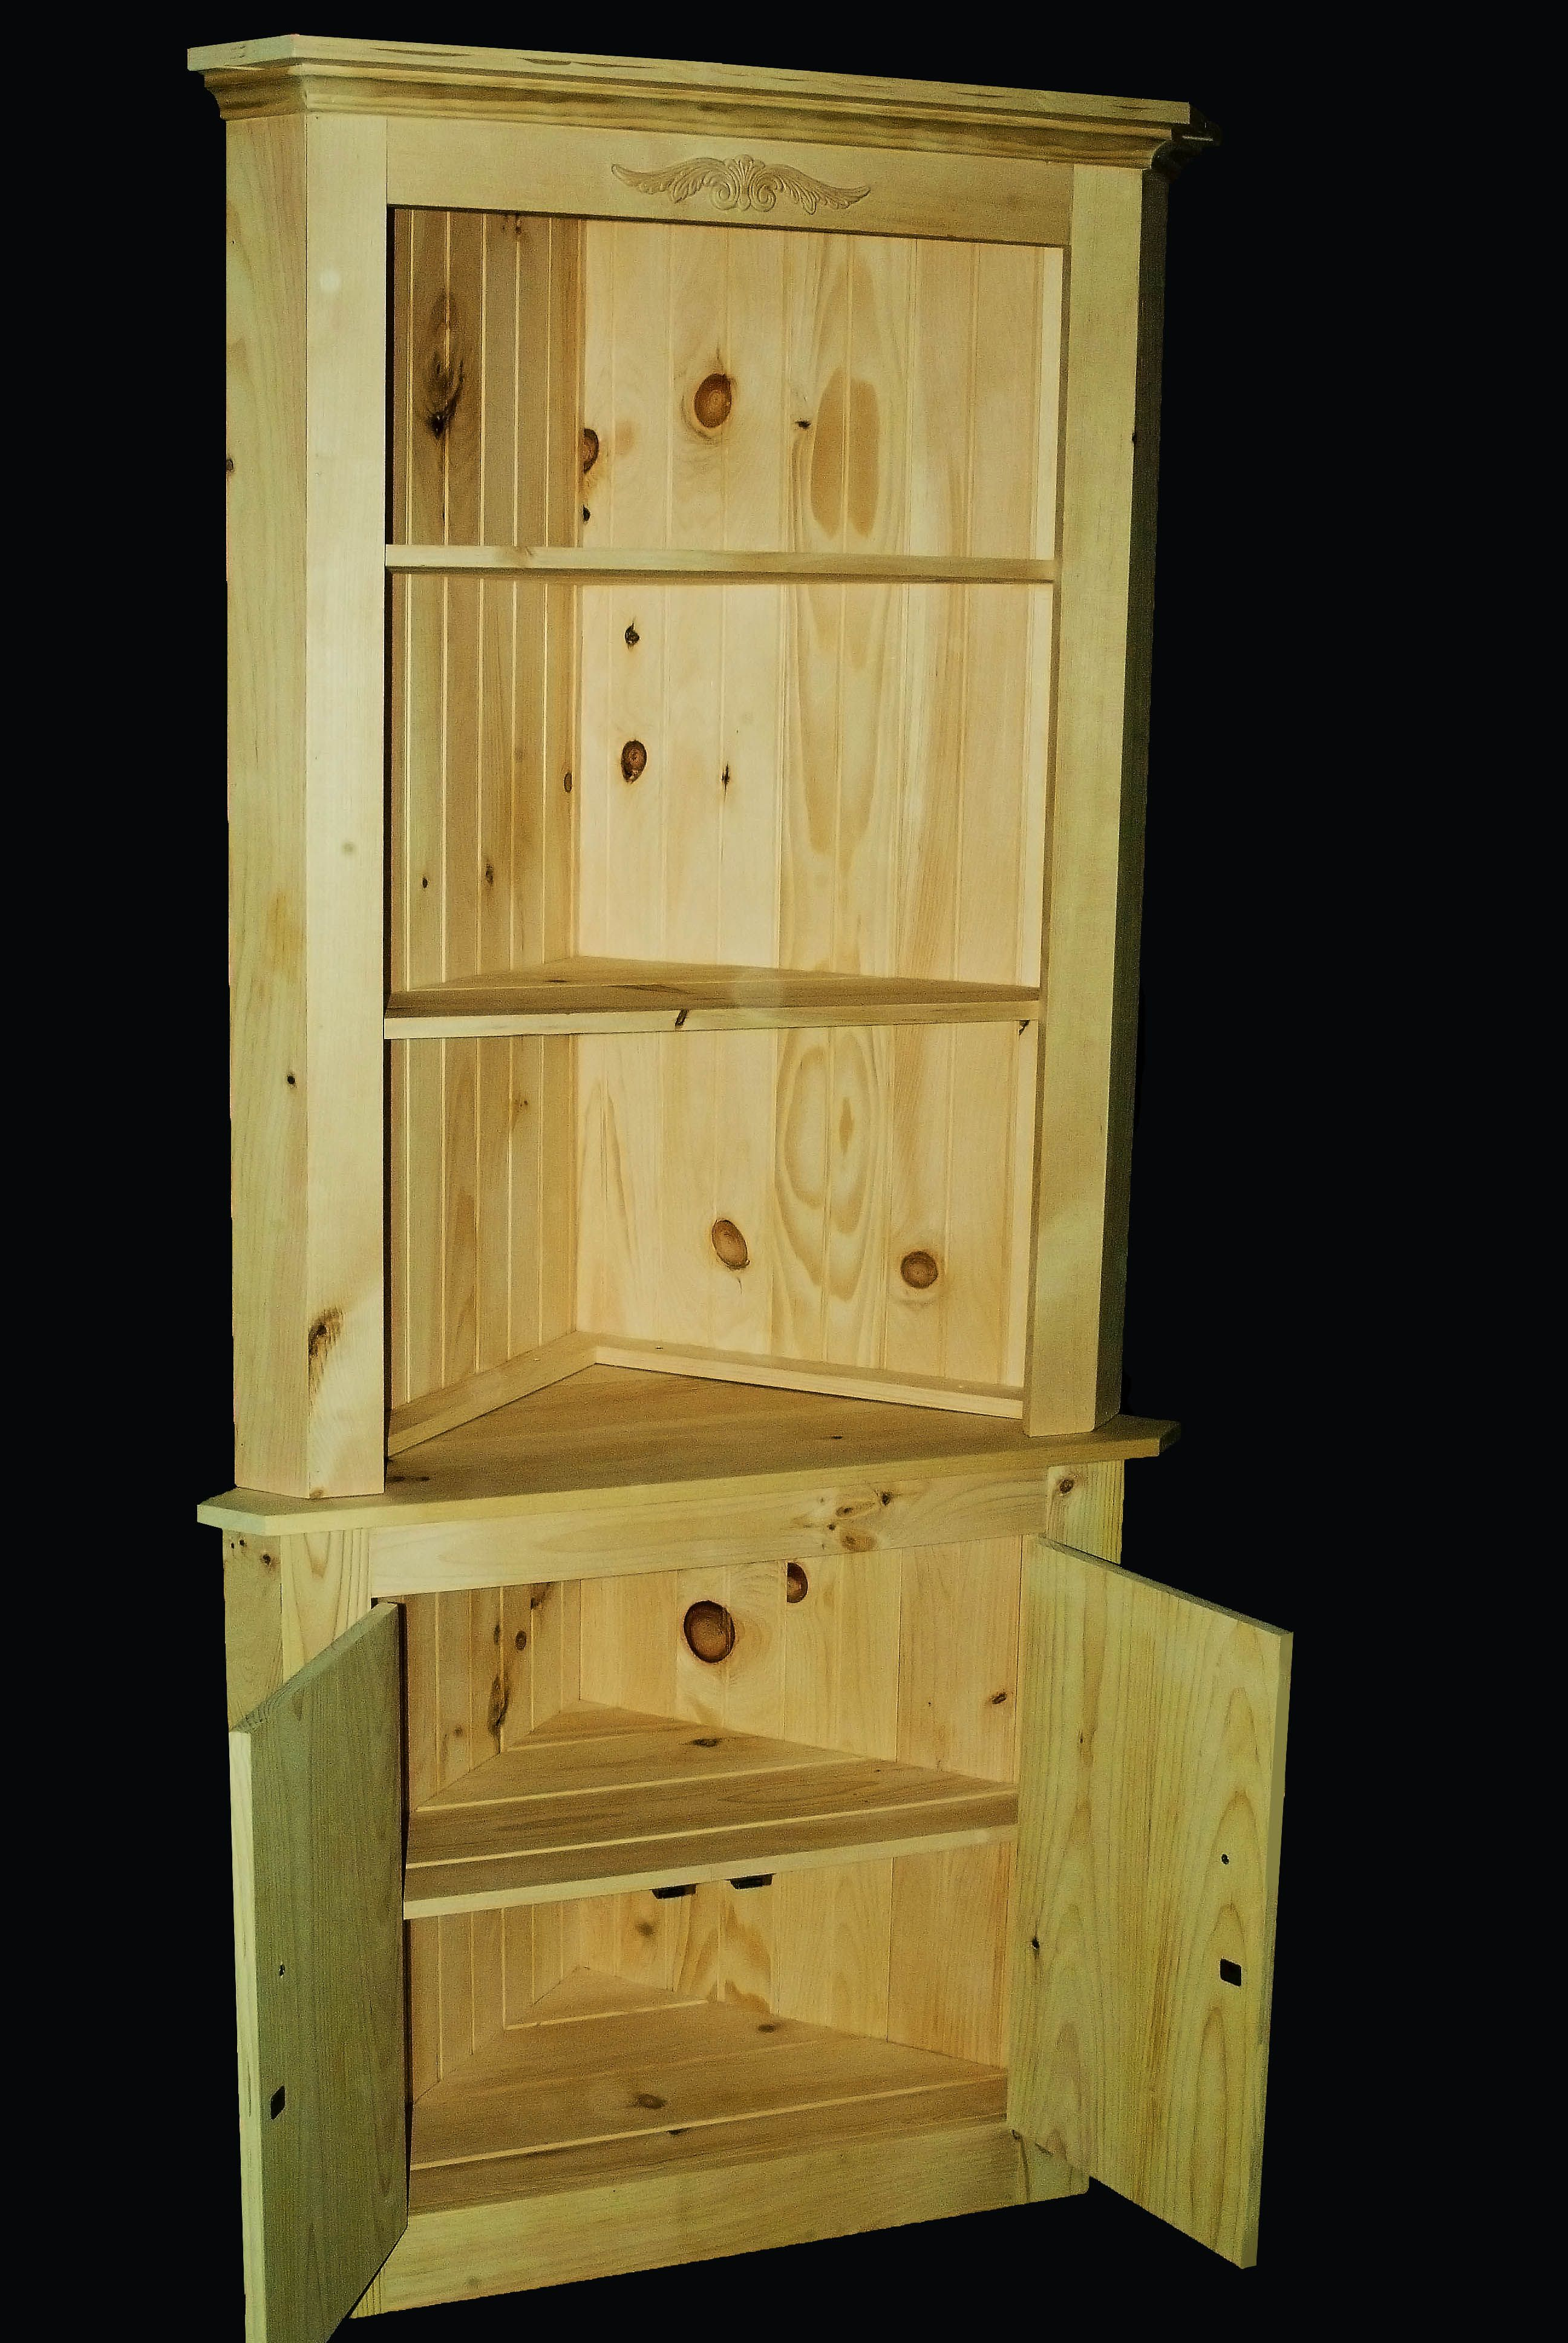 A Corner Cabinet I Built For A Christmas Present Diy Furniture Furniture Projects Furniture Diy